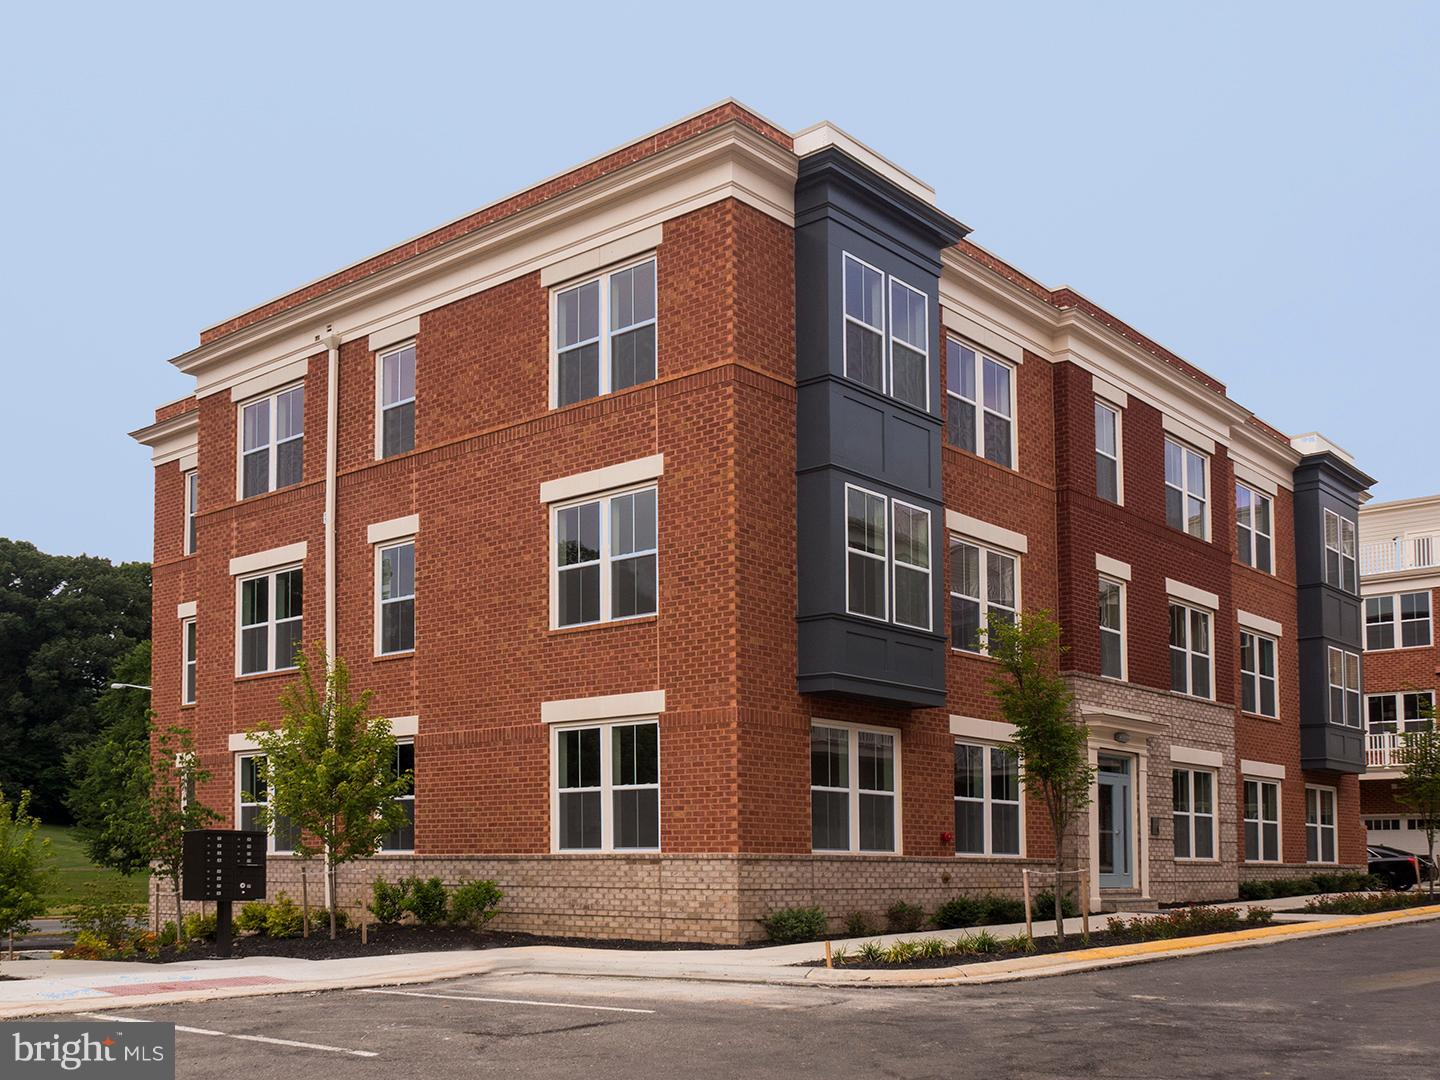 BRAND NEW CONDO BUILDING.  TO TOUR MODEL, COME TO SEKAS HOMES SALES OFFICE AT ROLAND CLARKE PLACE RESTON, VA.  SUNRISE SQUARE